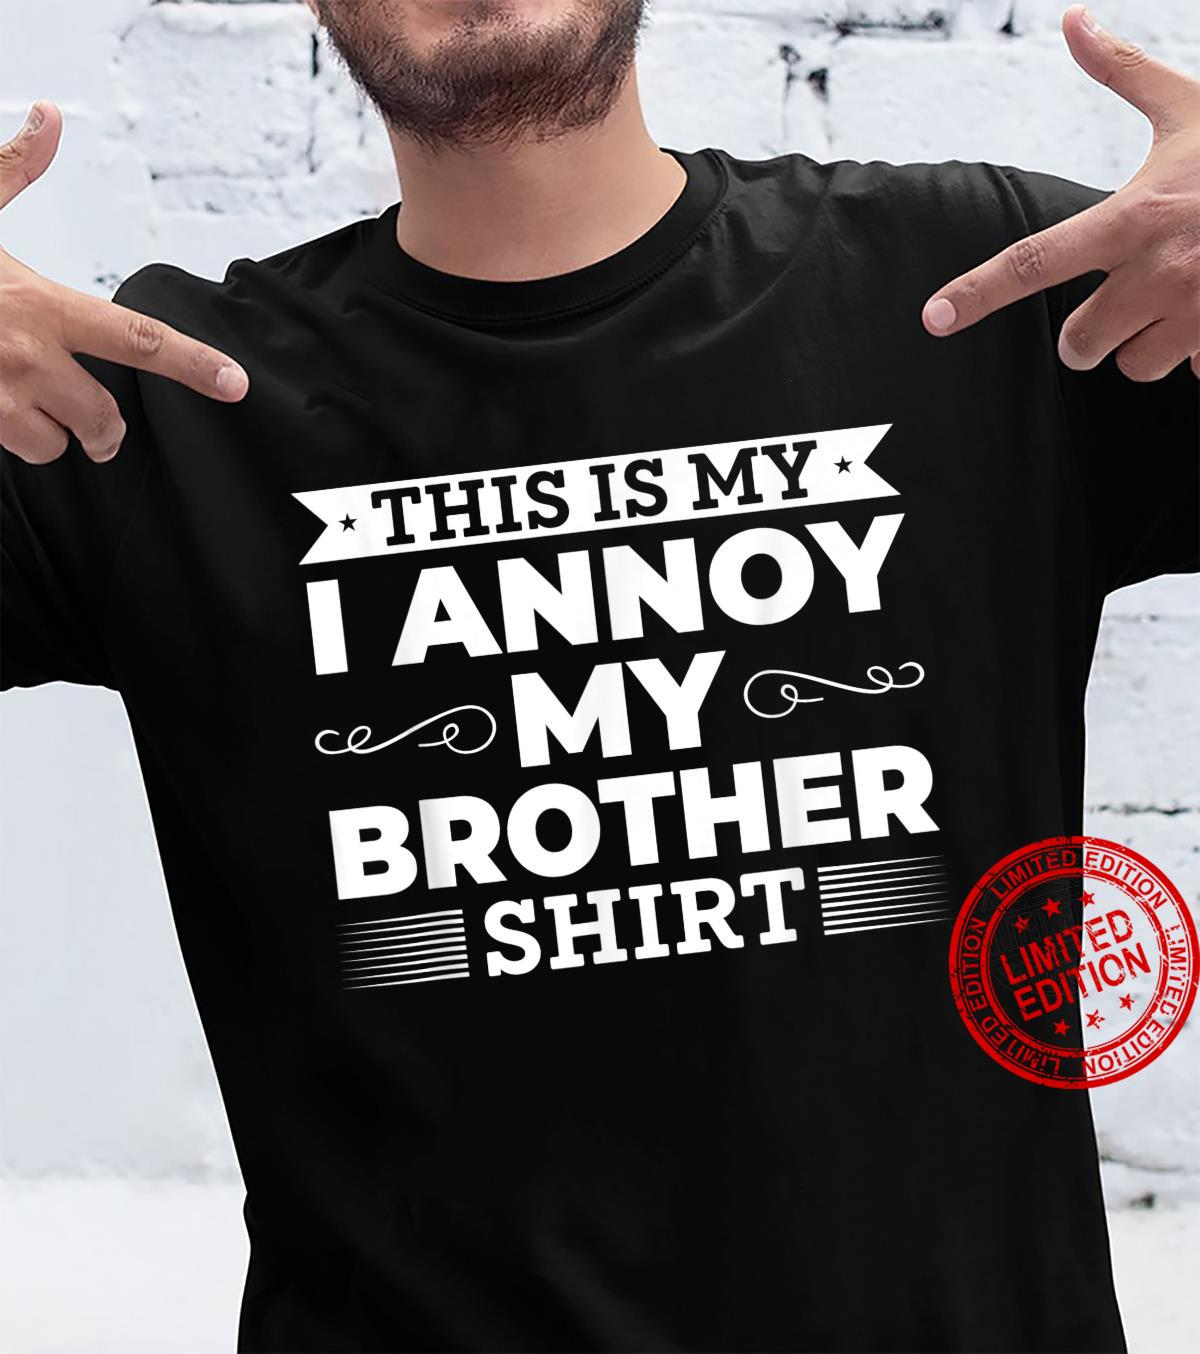 This is my I annoy my brother shirt Gift For Sister Shirt